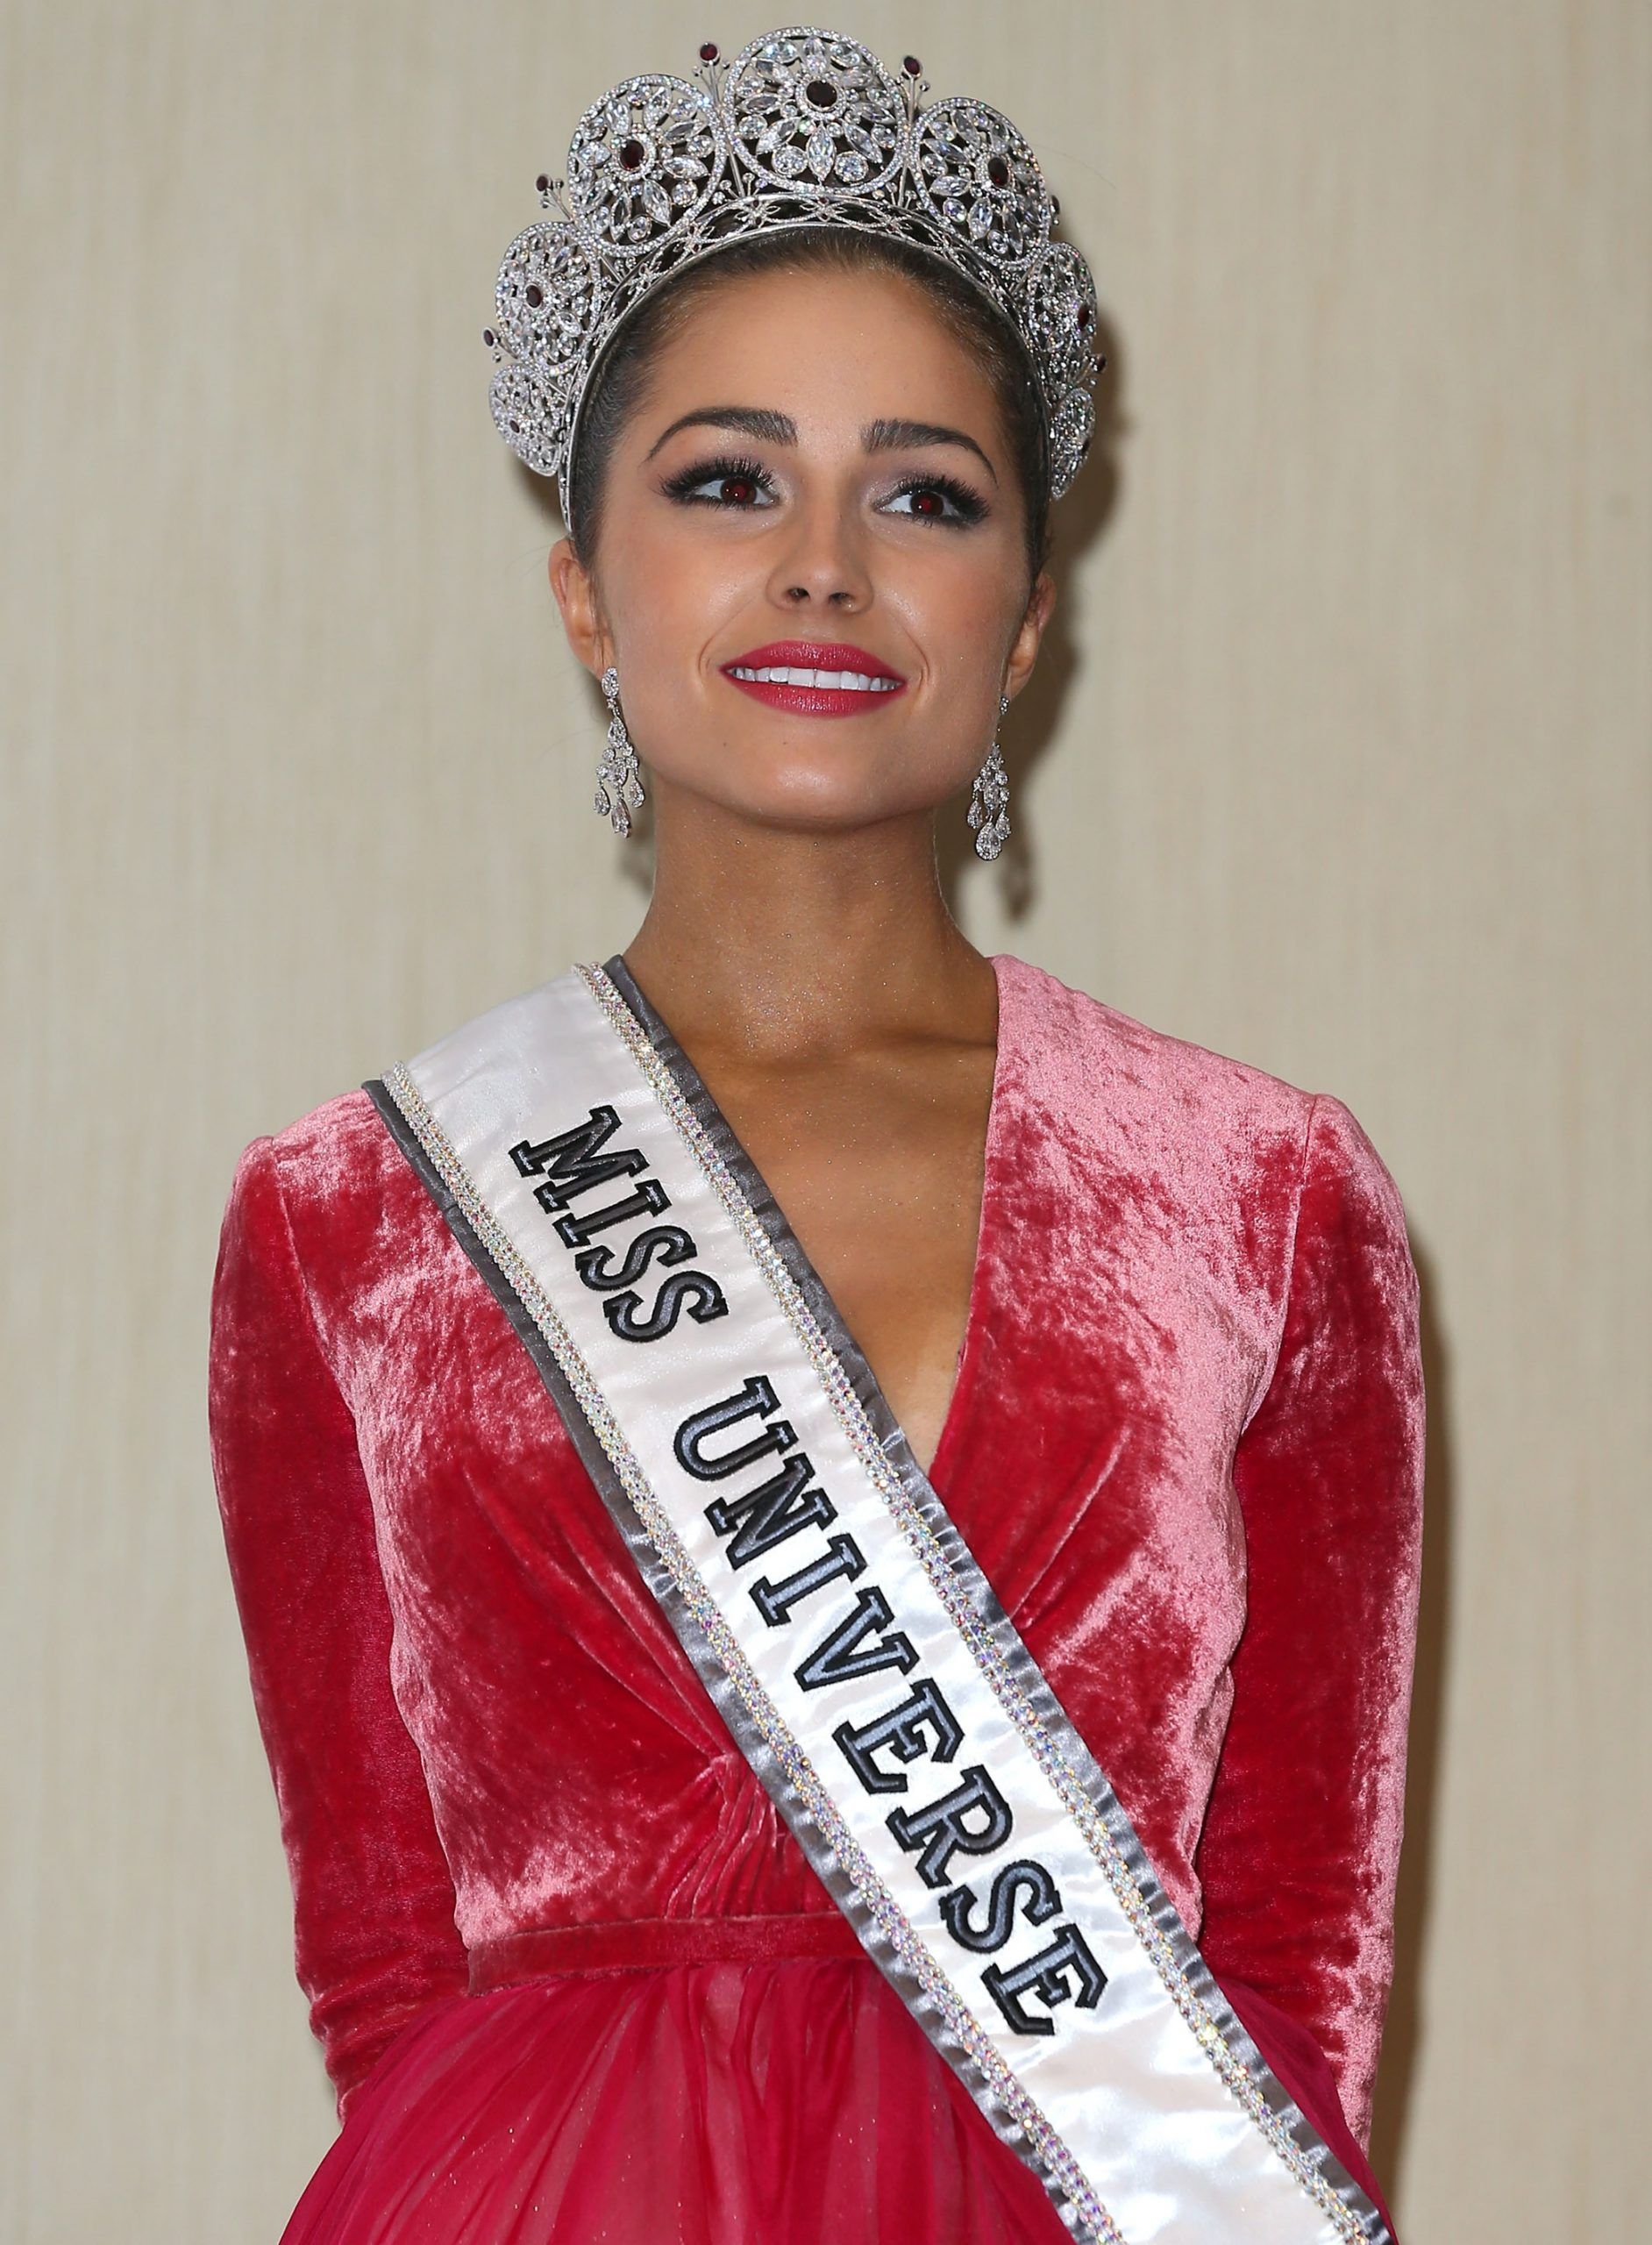 Olivia Culpo was 20 years old when winning the Miss Universe pageant